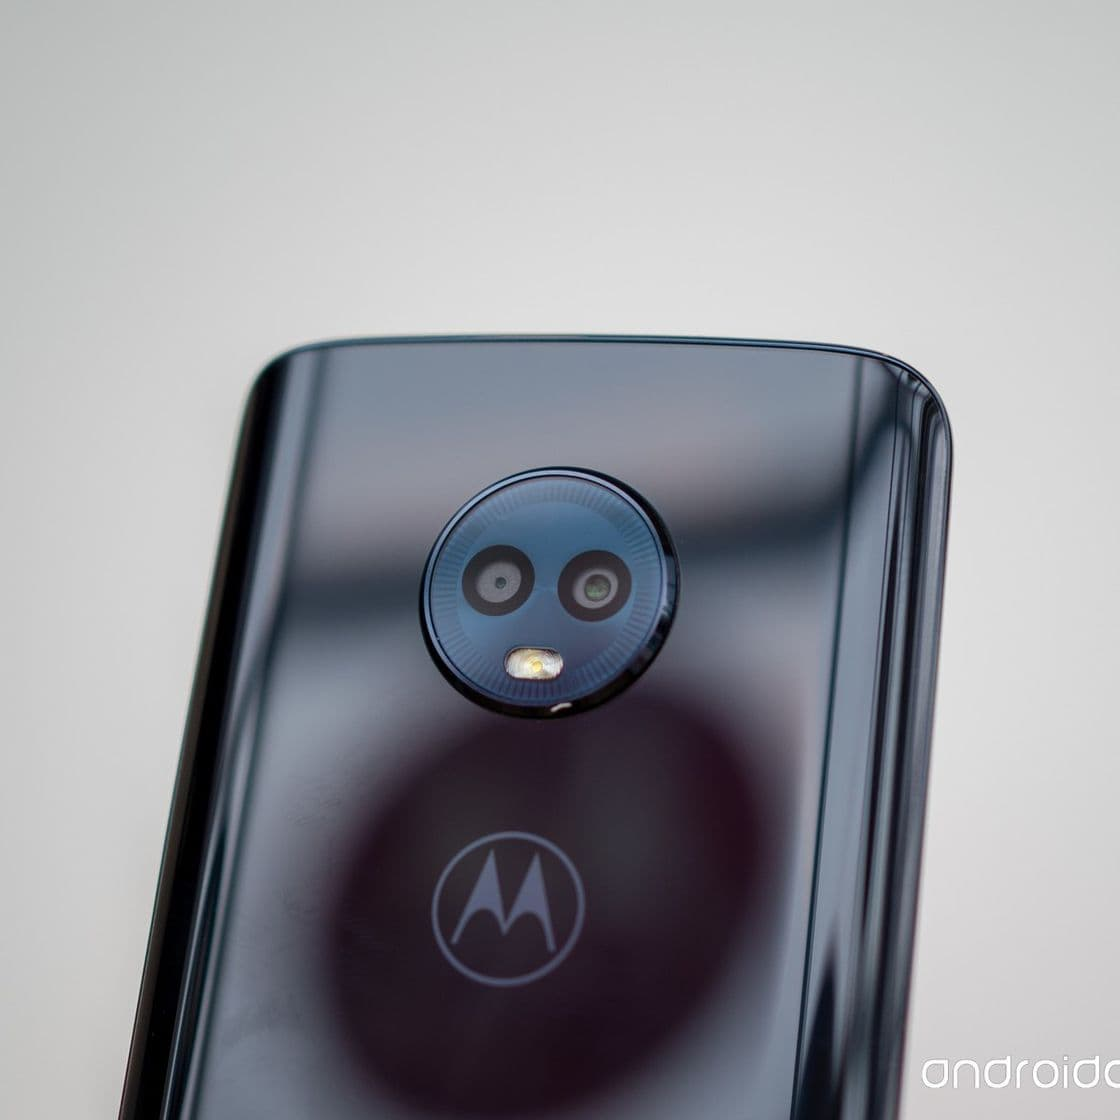 Compare Phones Side By Side >> Motorola Moto G6 Plus buy smartphone, compare prices in ...